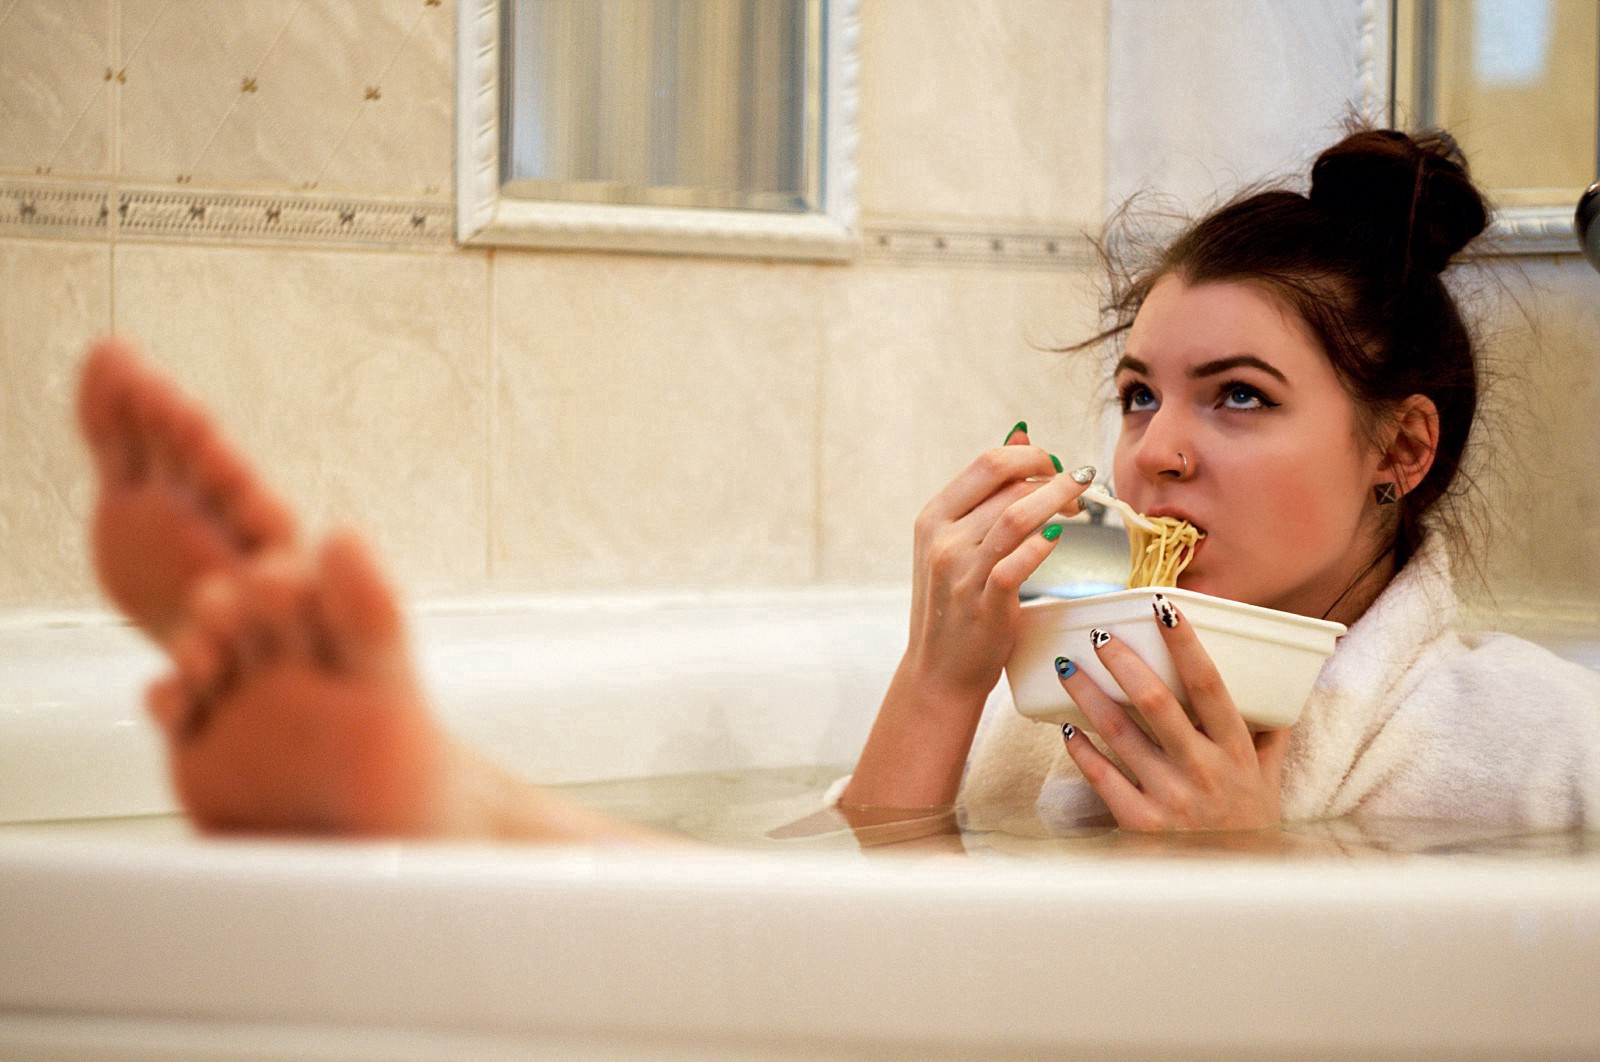 Woman sitting in the bath eating instant noodles out of a plastic container